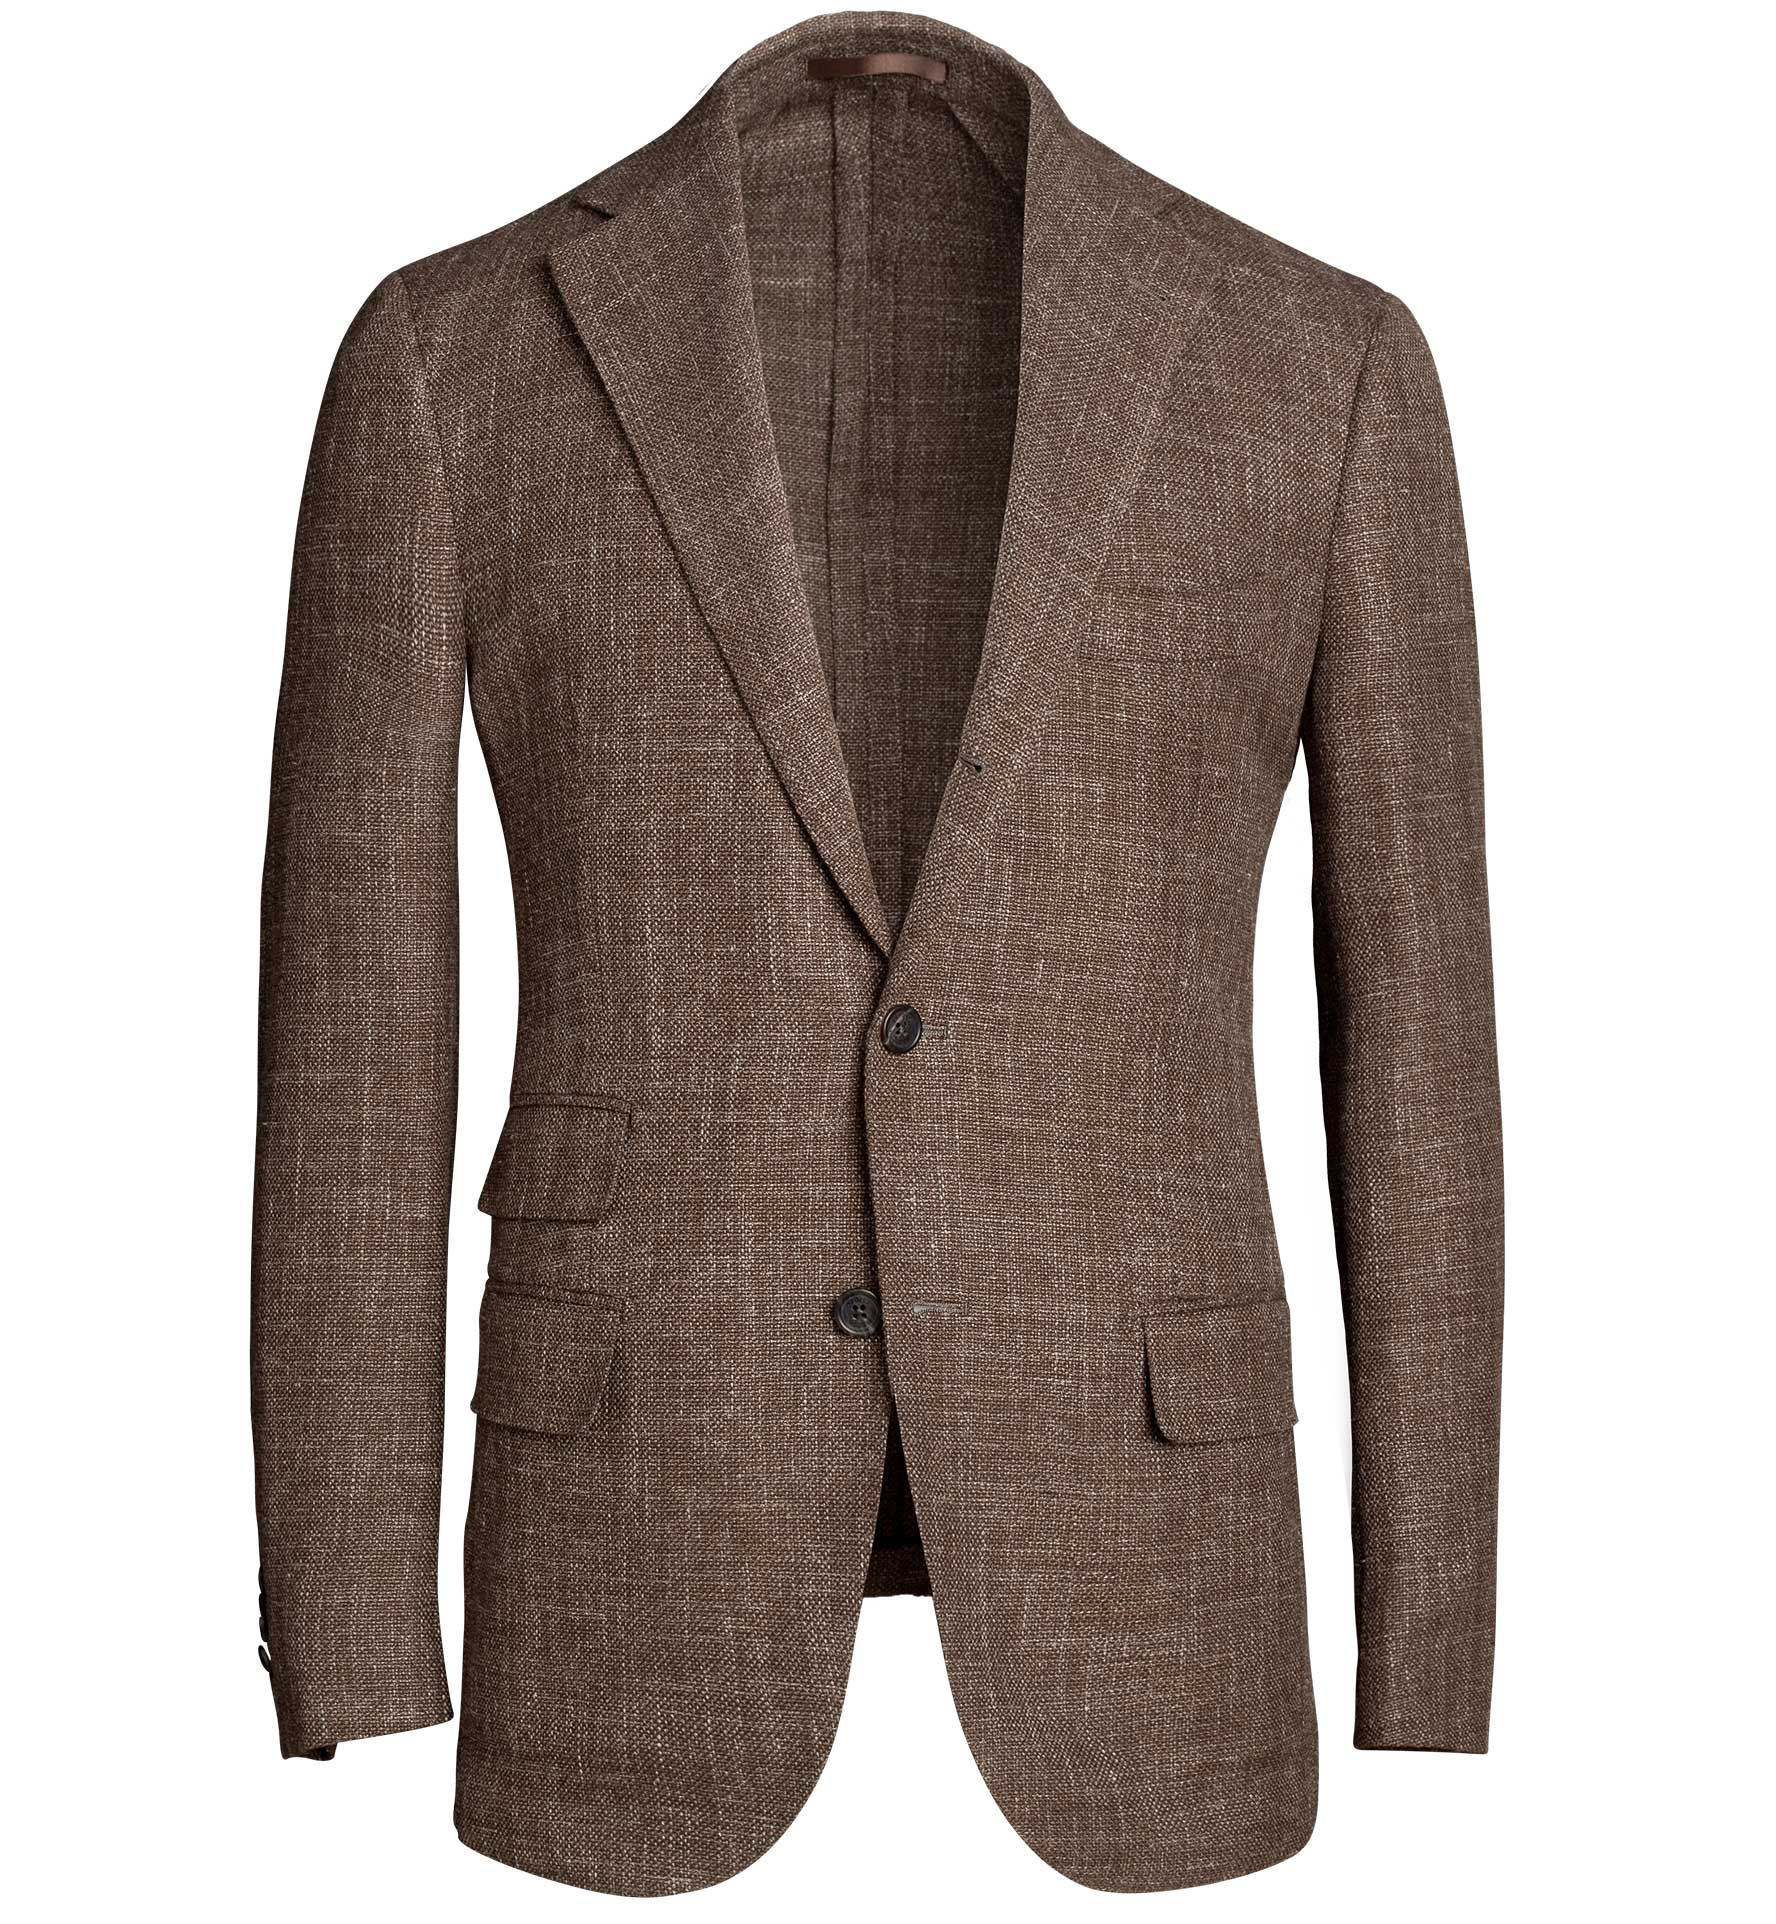 Zoom Image of Bedford Brown Wool Blend Hopsack Jacket